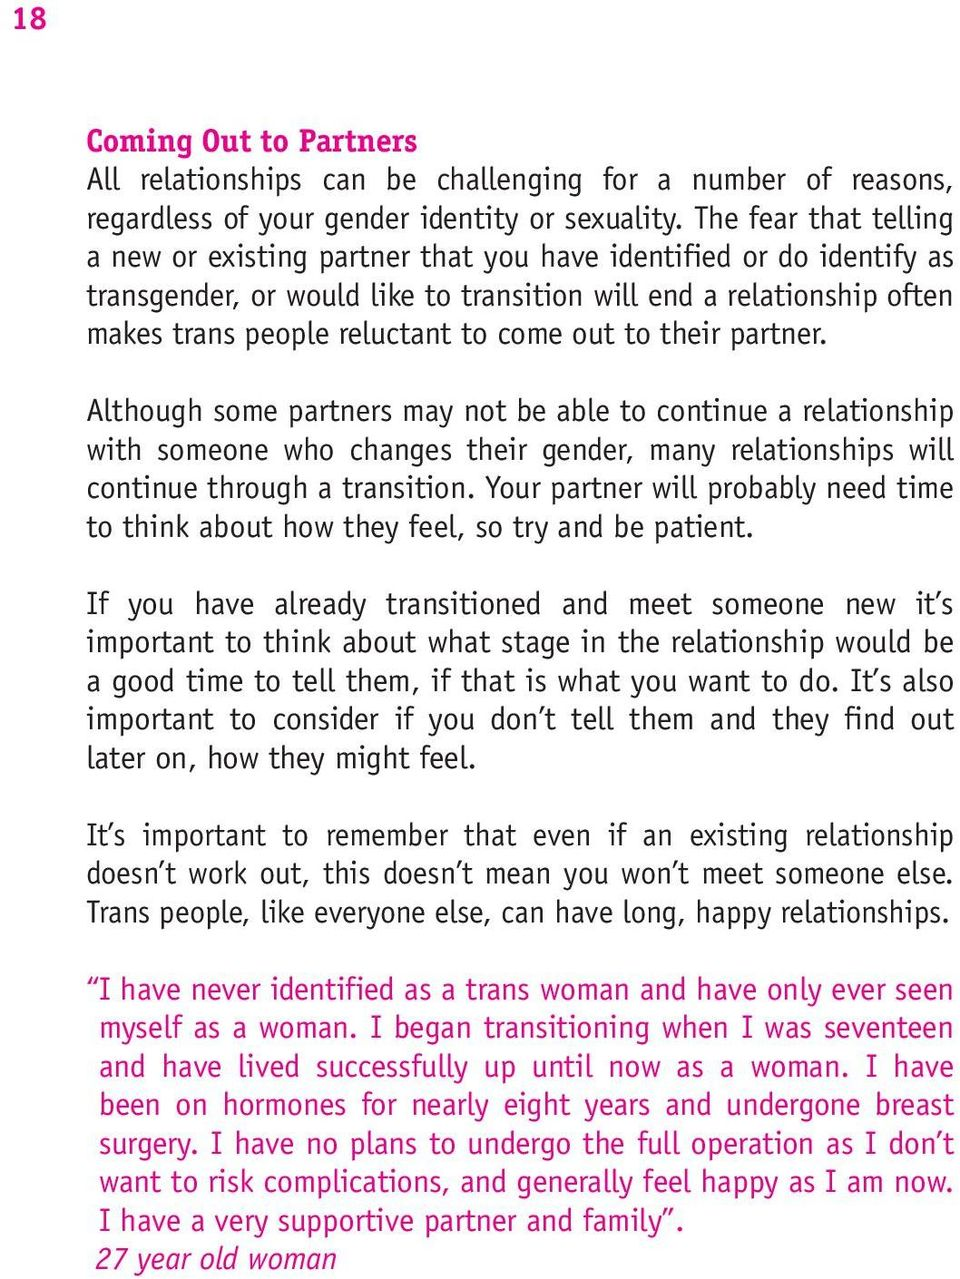 out to their partner. Although some partners may not be able to continue a relationship with someone who changes their gender, many relationships will continue through a transition.